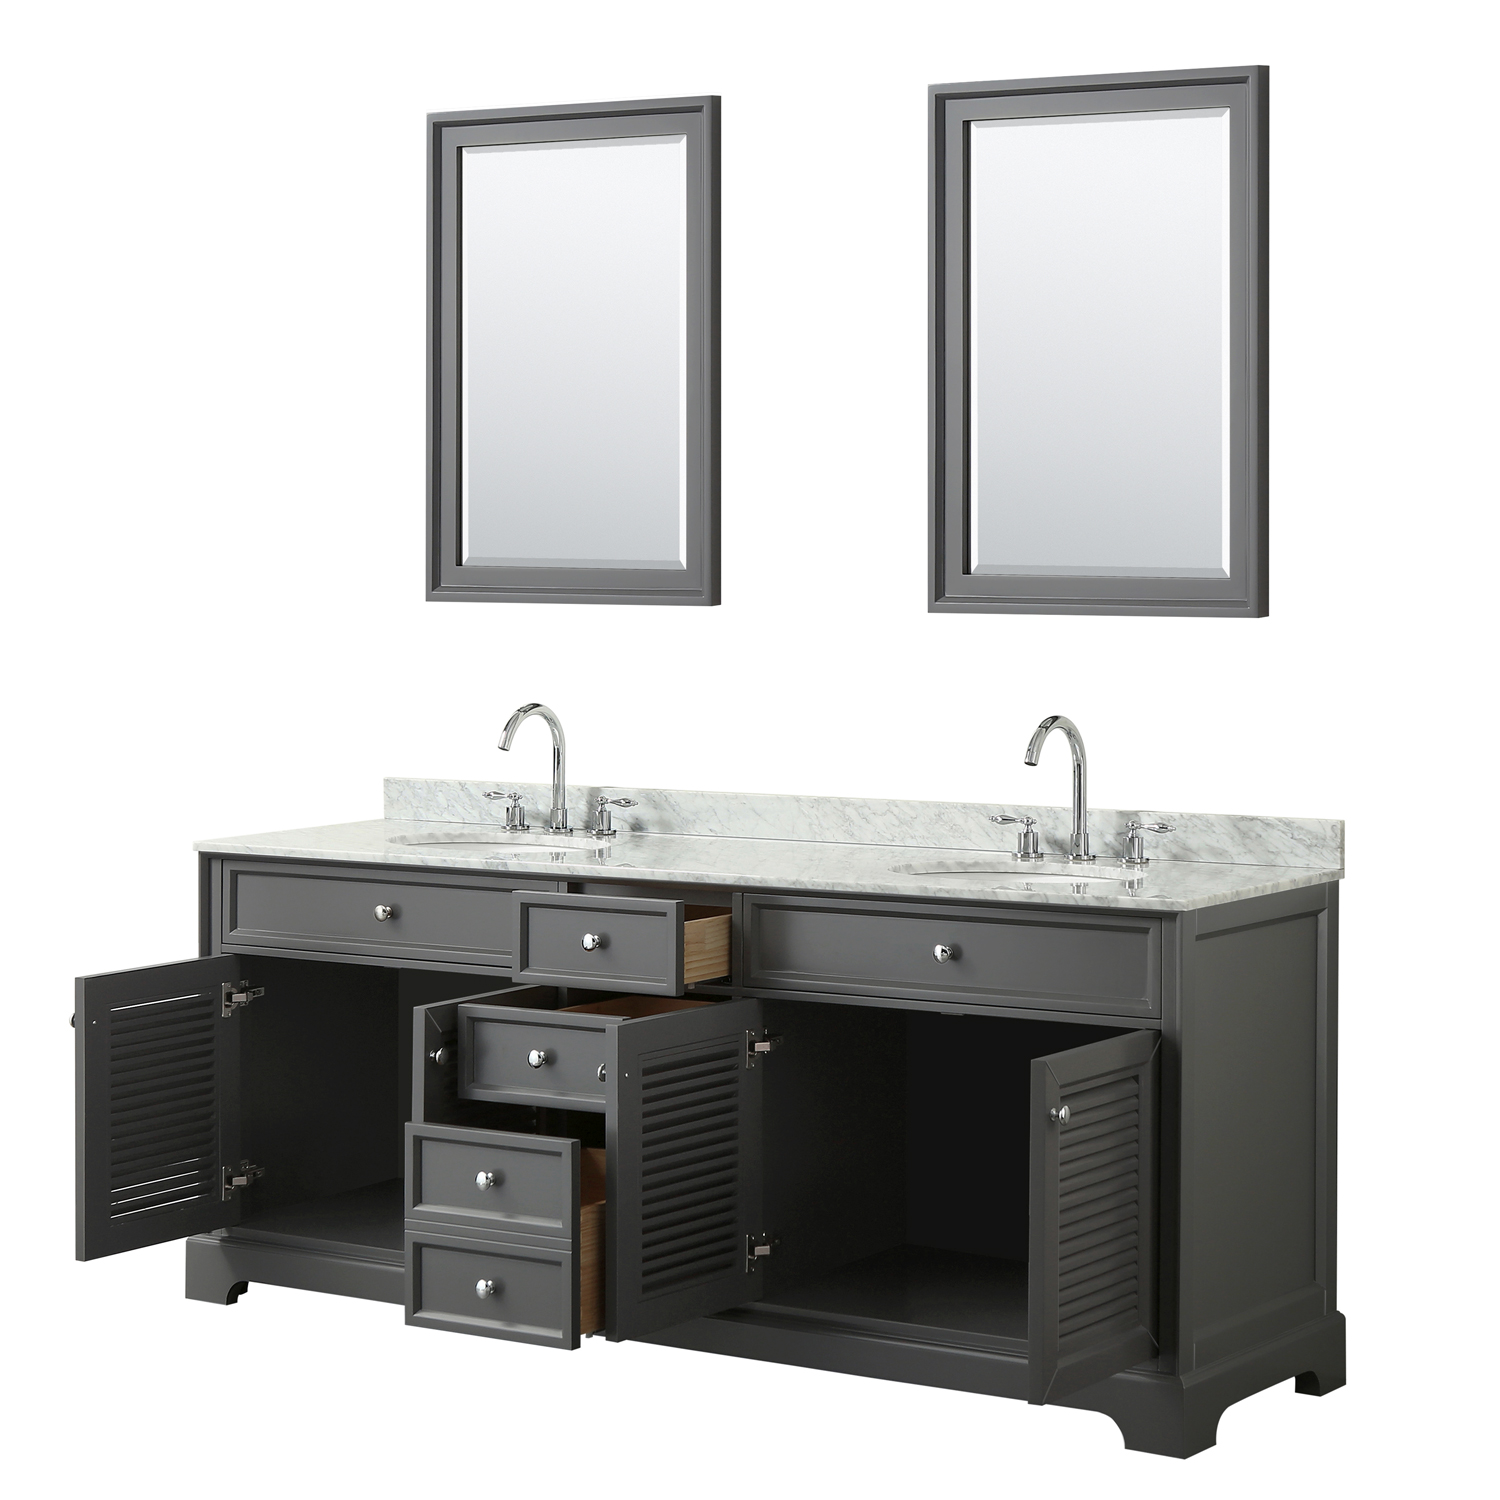 80 inch mirror wyndham collection undermount square 80 inch double bathroom vanity in dark gray white carrara marble countertop oval 80